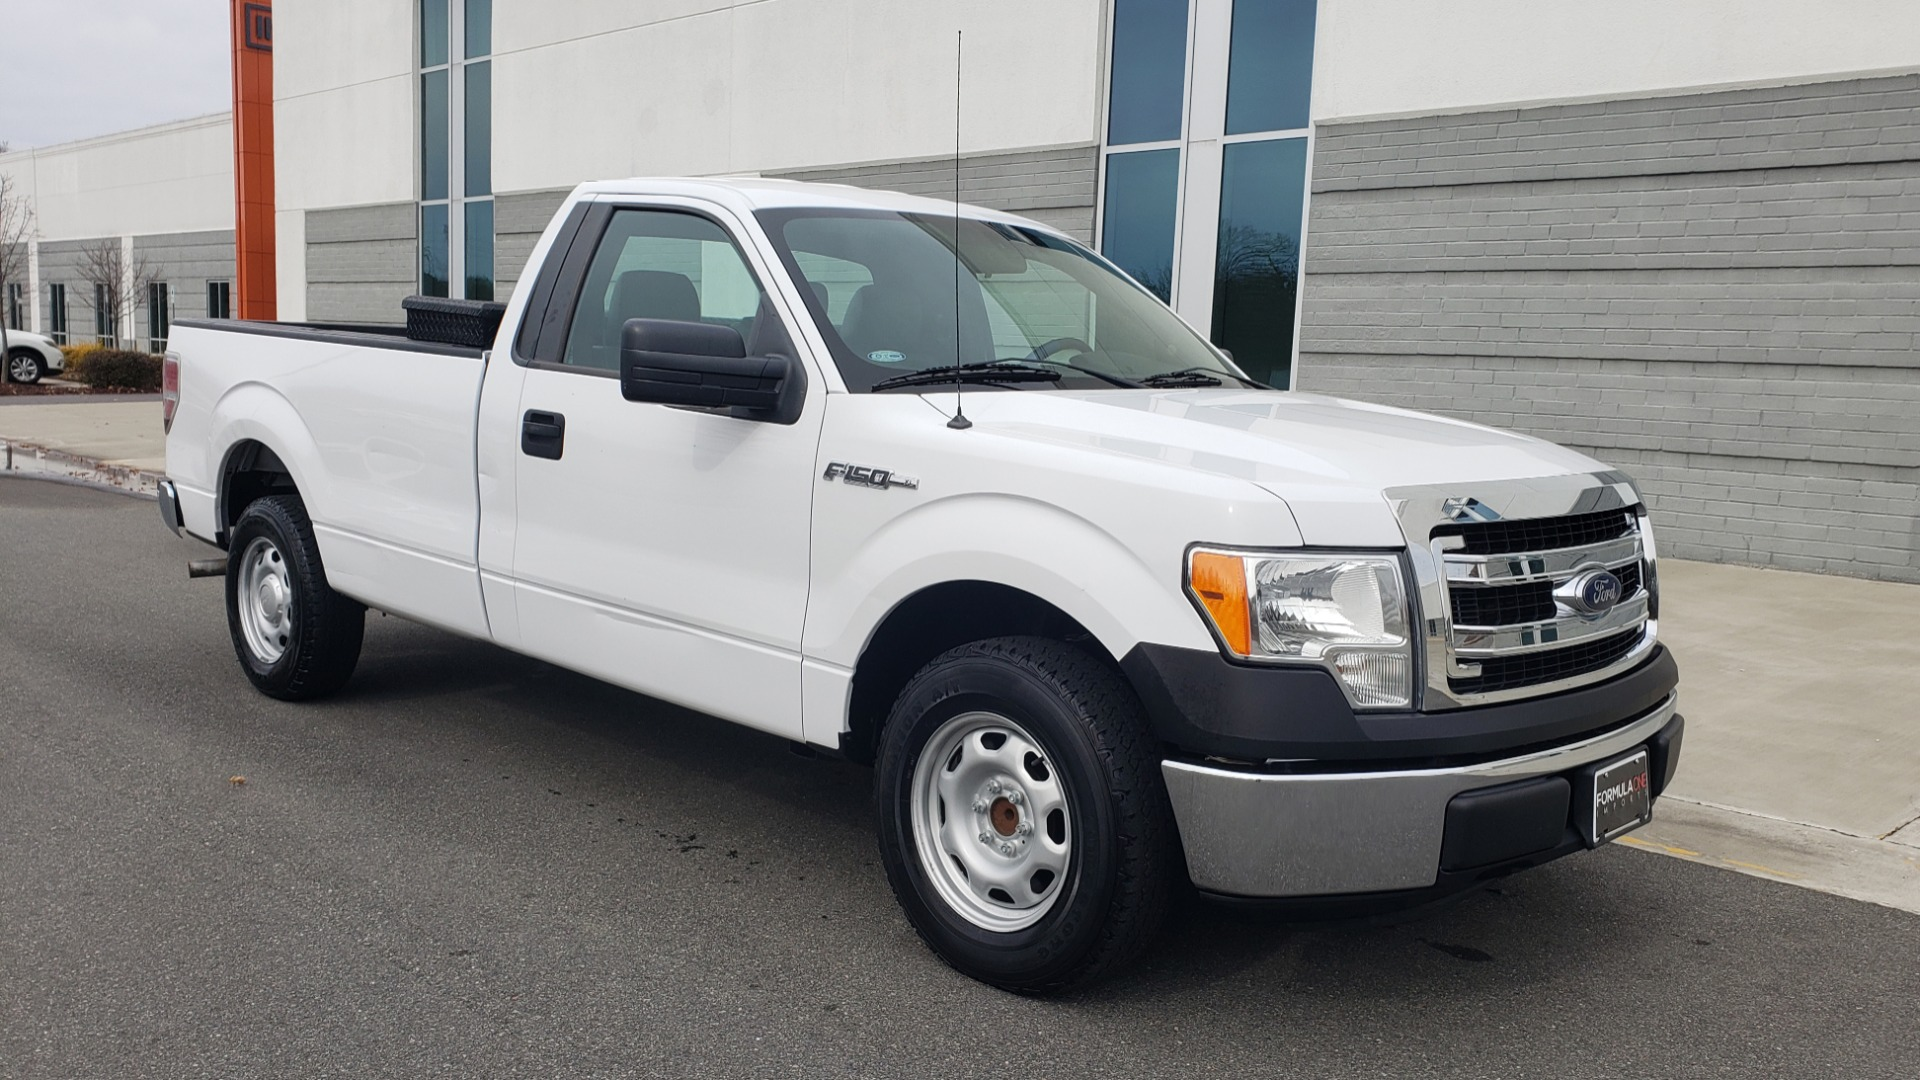 Used 2014 Ford F-150 XL 4X2 REGULAR CAB / 3.7L V6 / 6-SPD AUTO / CRUISE CONTROL for sale $11,995 at Formula Imports in Charlotte NC 28227 4